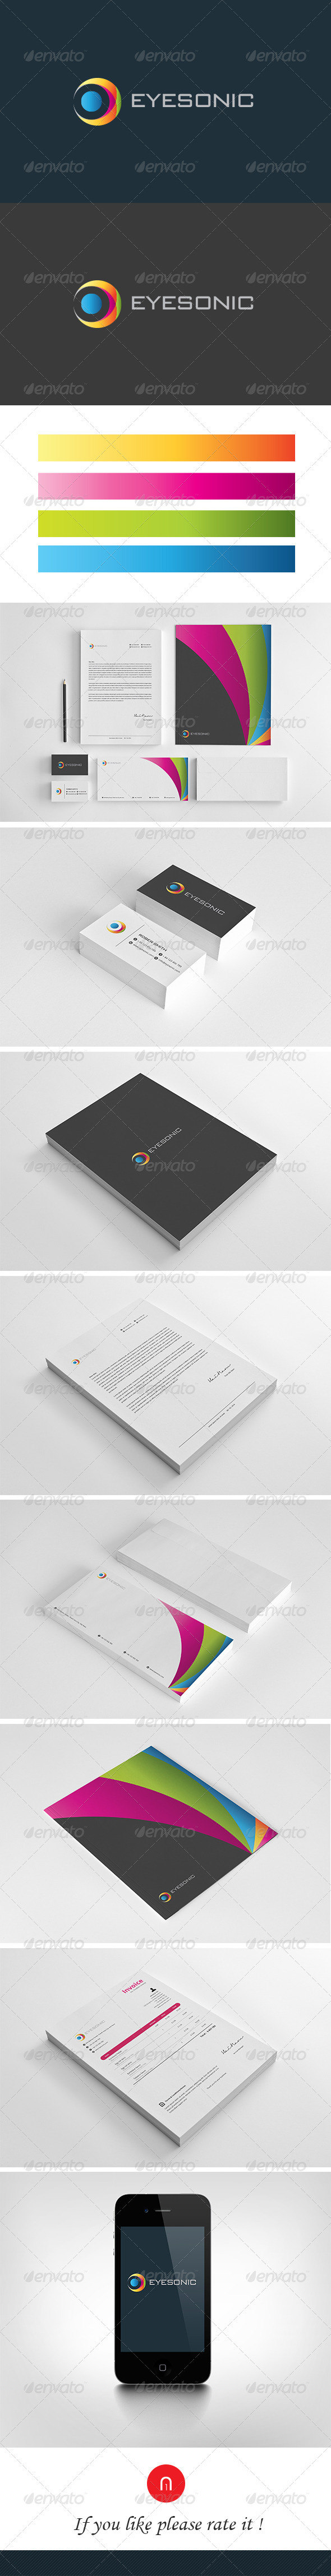 Stationary &amp; Brand Identity - Eyesonic - Stationery Print Templates